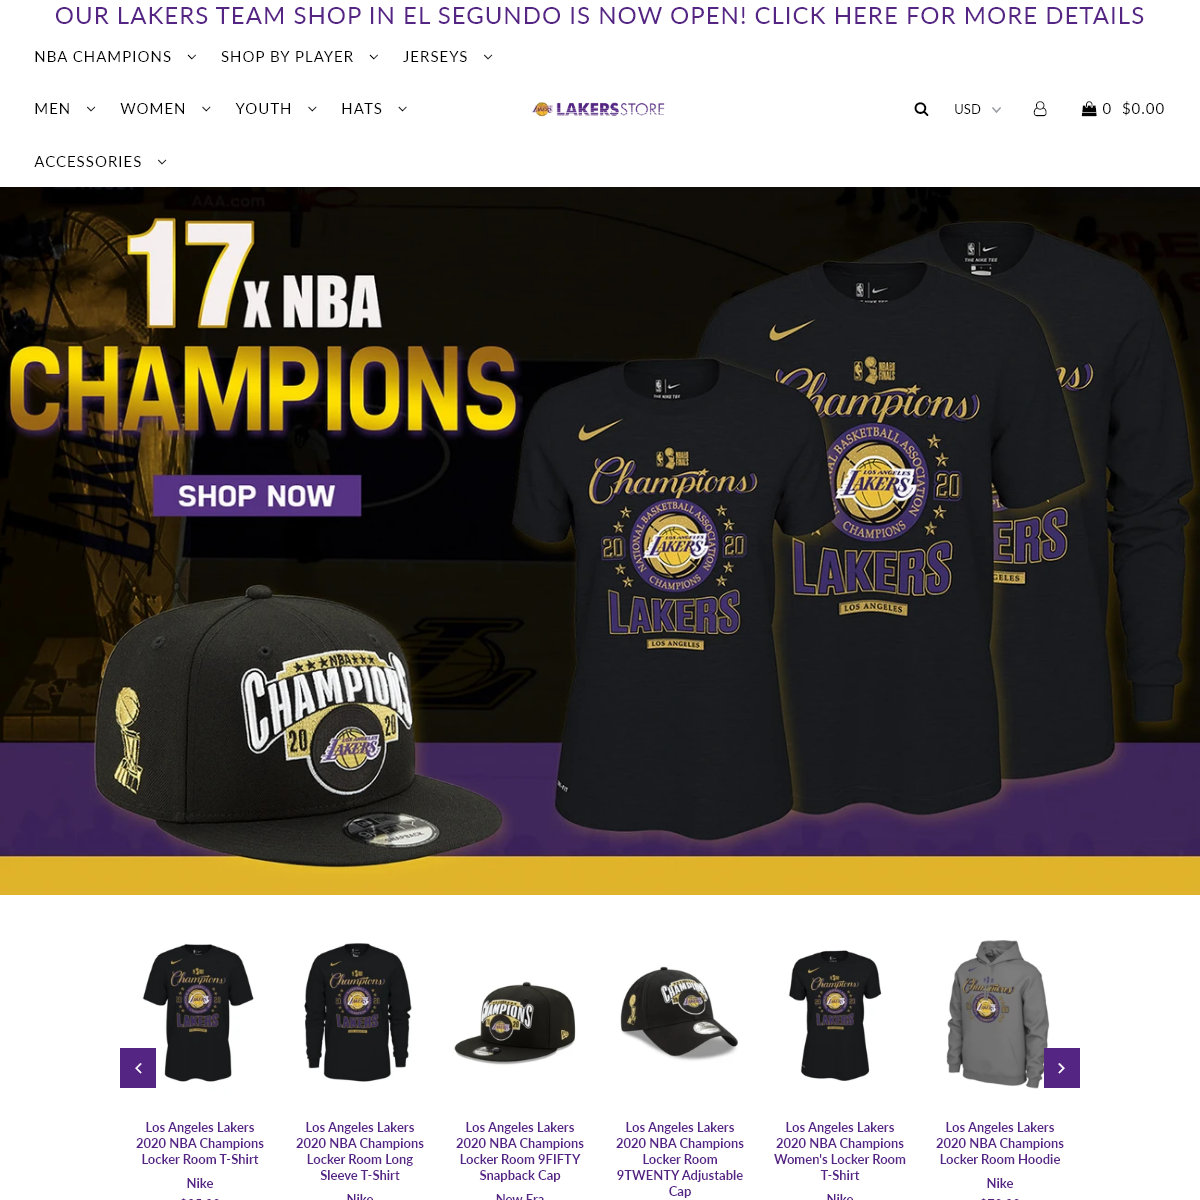 Lakers Store - Los Angeles Lakers Gear & Apparel